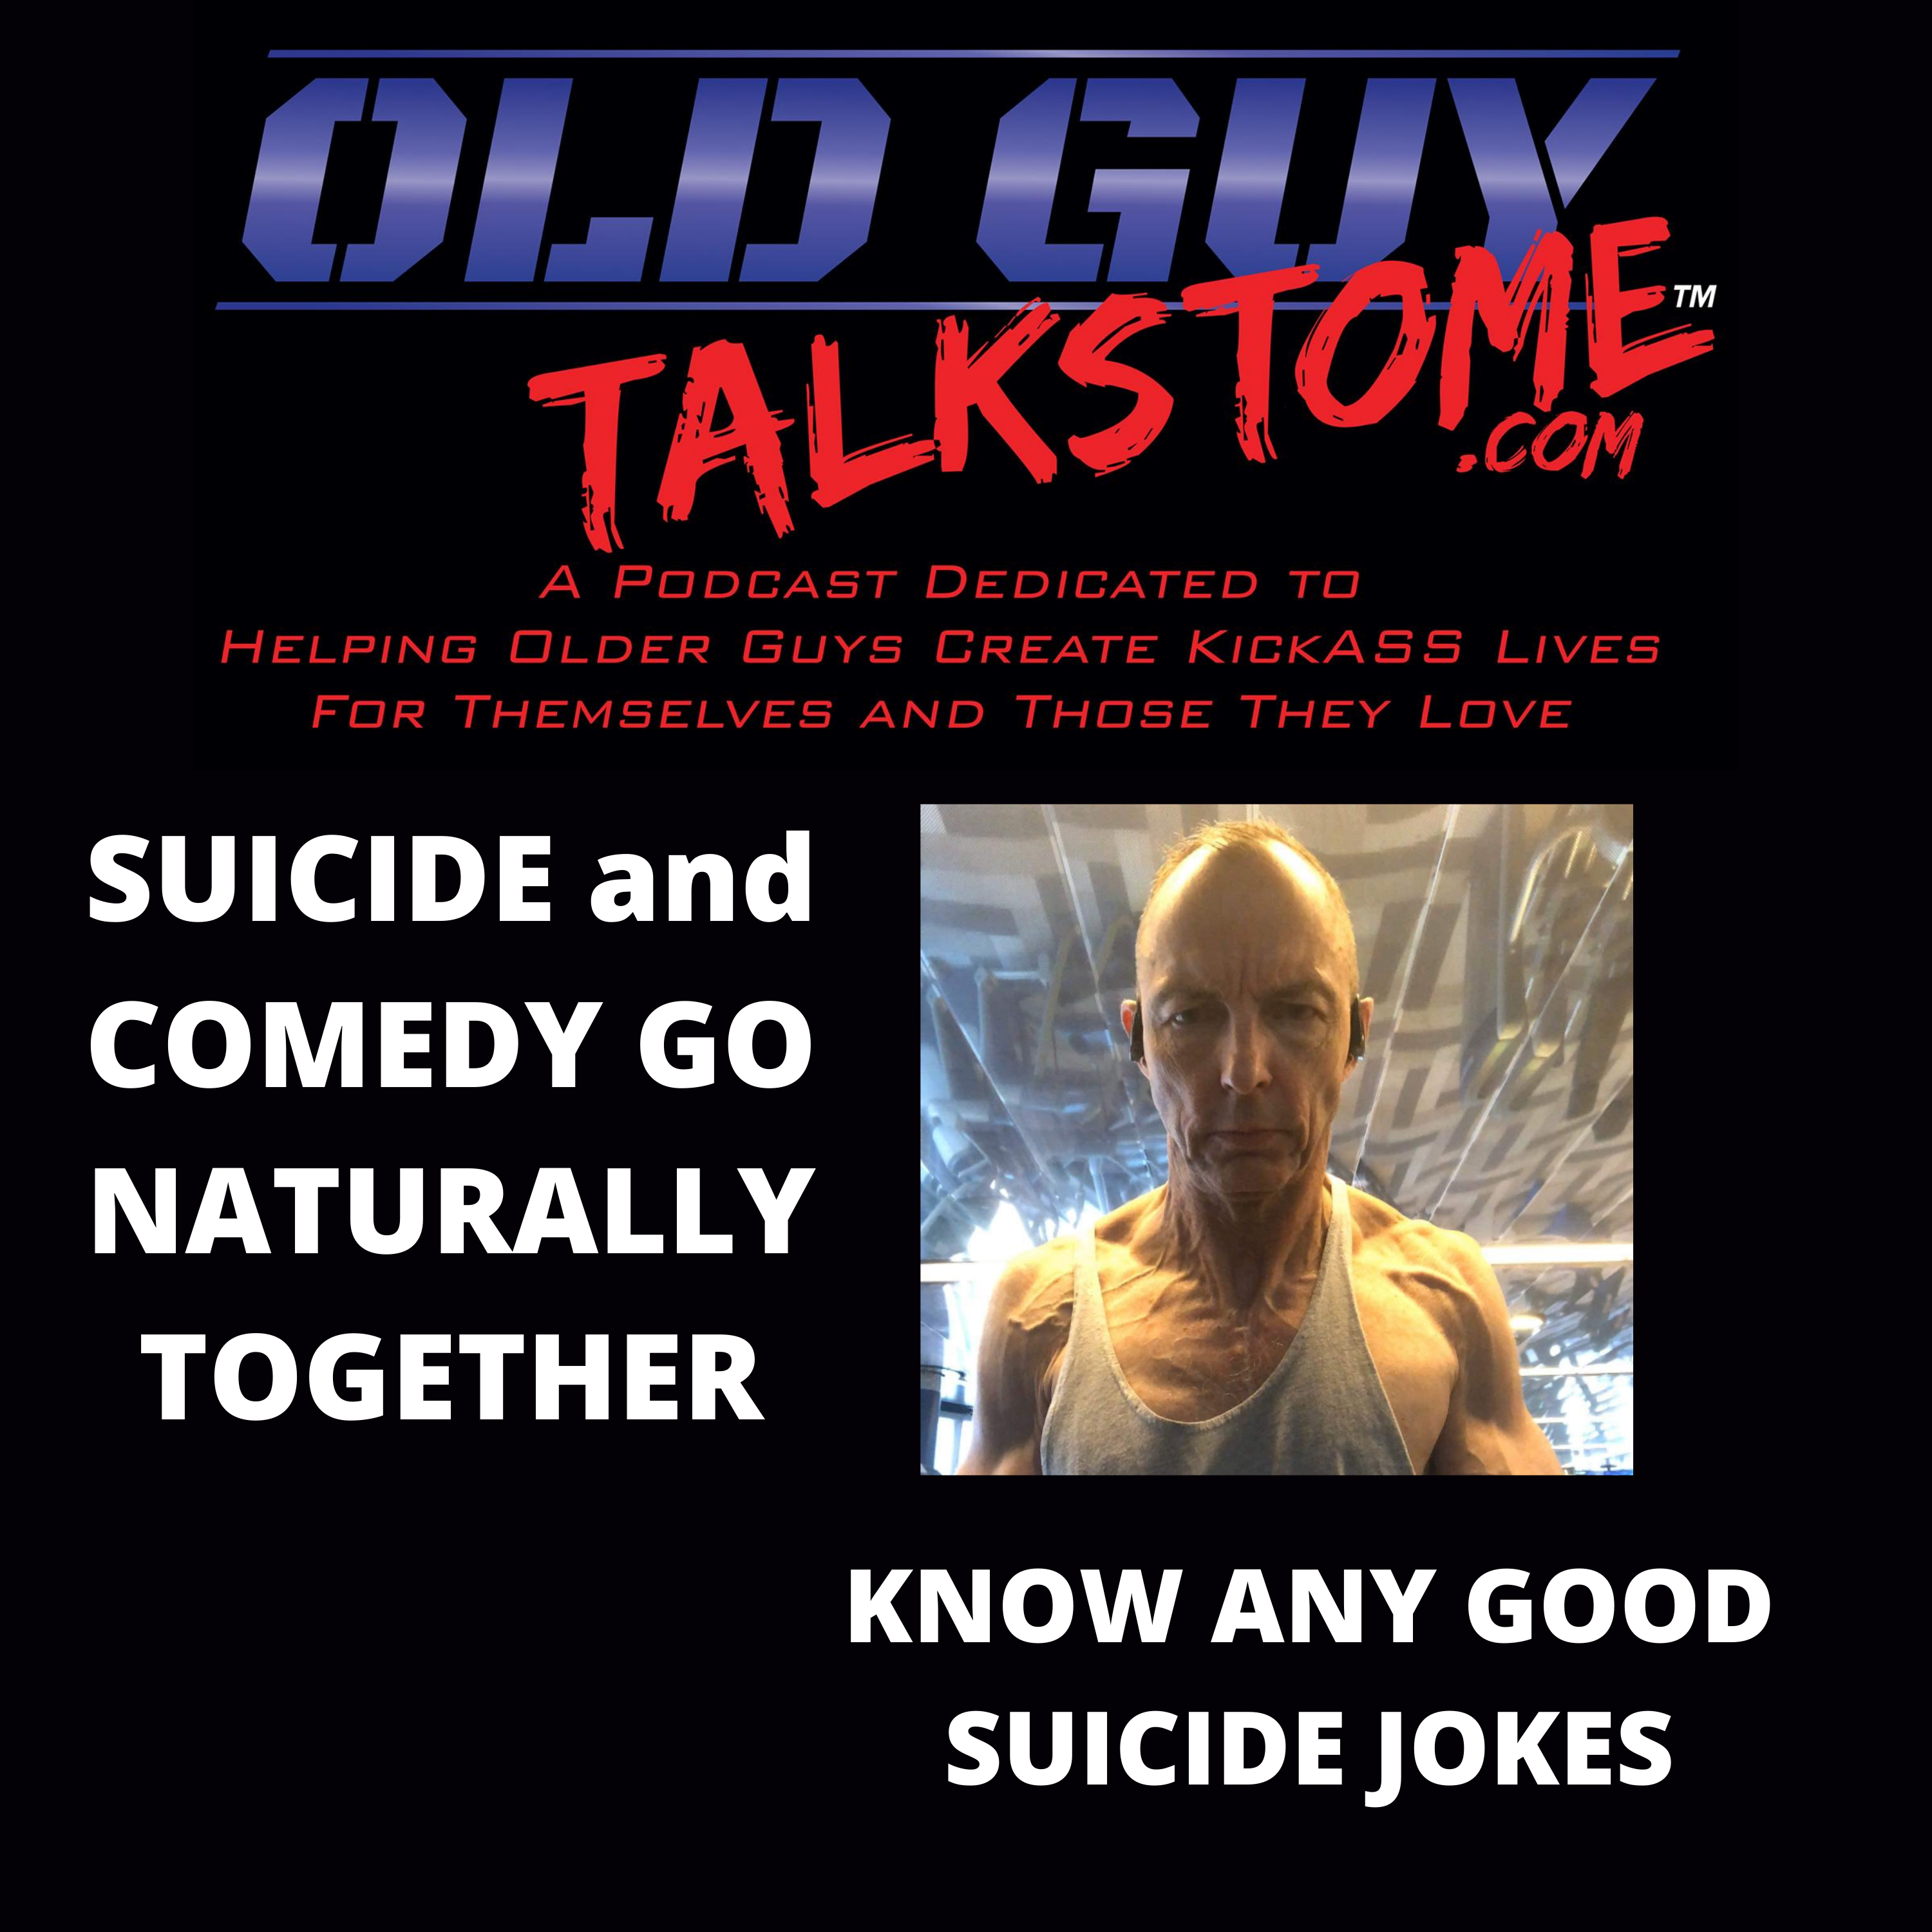 OldGuyTalksToMe - SUICIDE and COMEDY GO NATURALLY TOGETHER